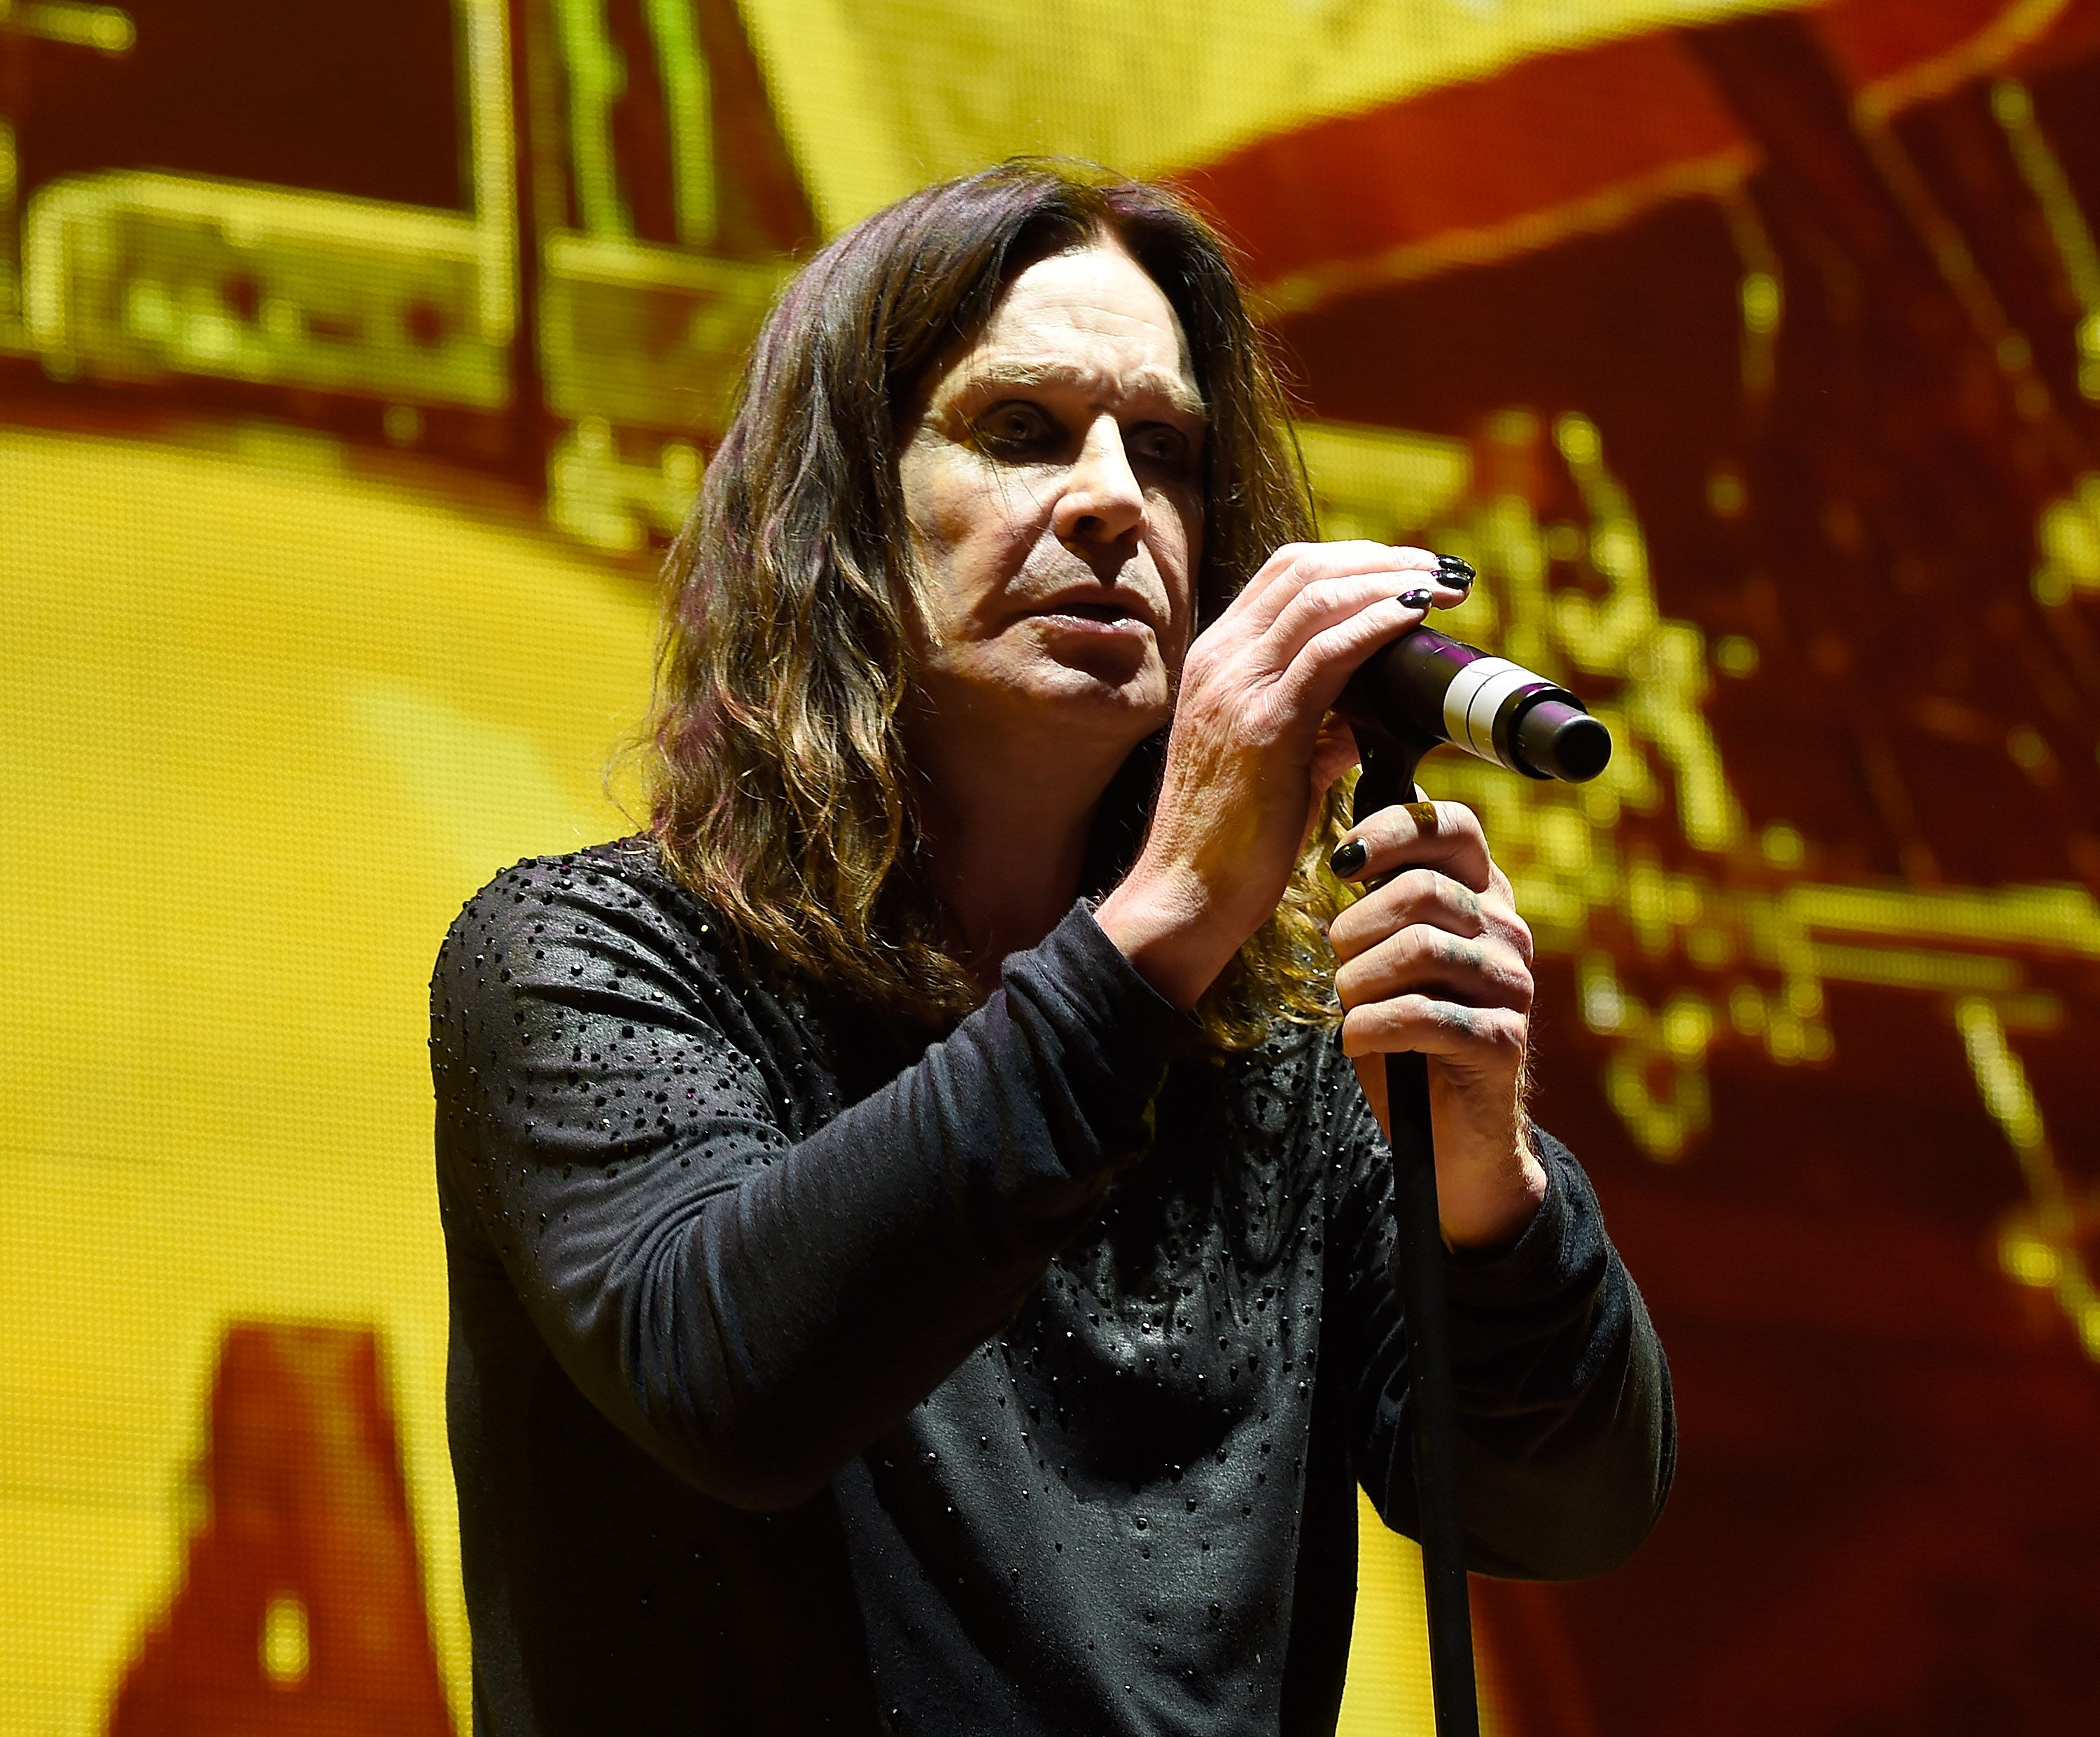 Ozzy Osbourne se produit au Madison Square Garden le 25 février 2016 à New York. | Photo: Getty Images